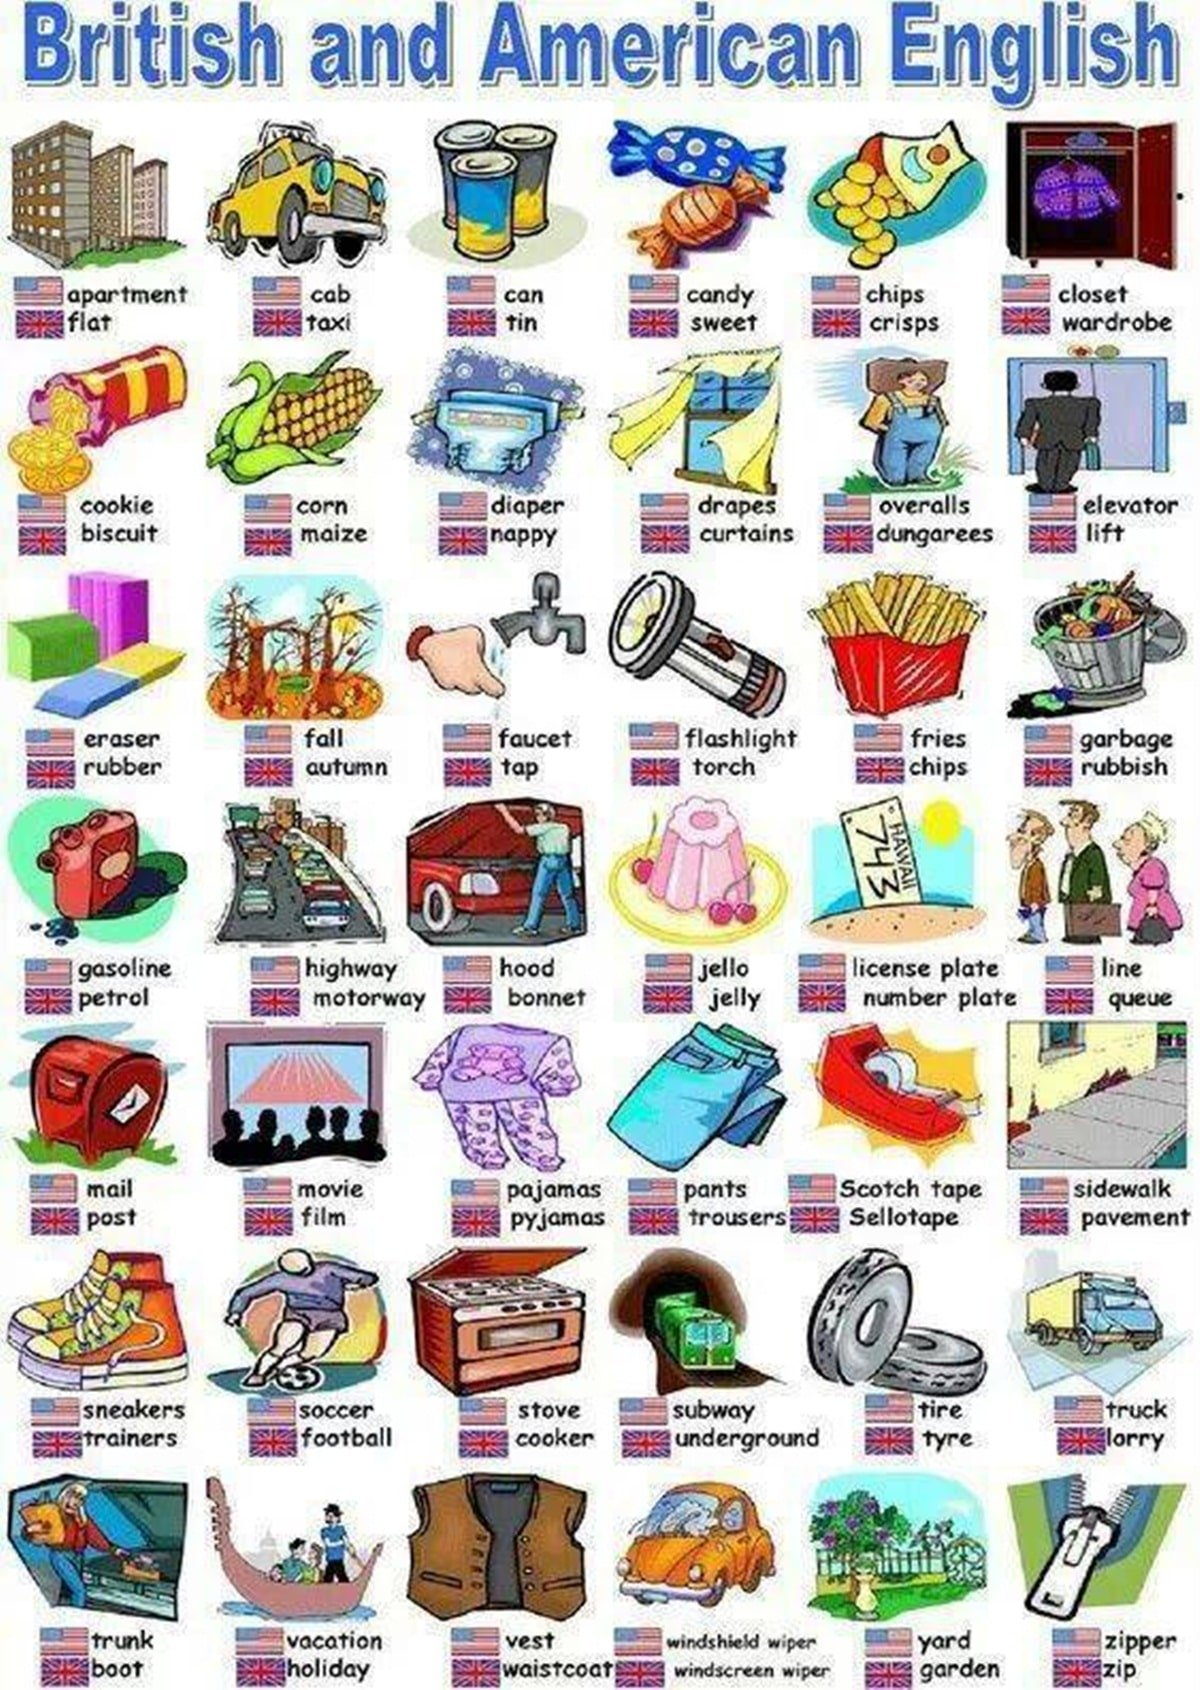 British vs. American English Differences